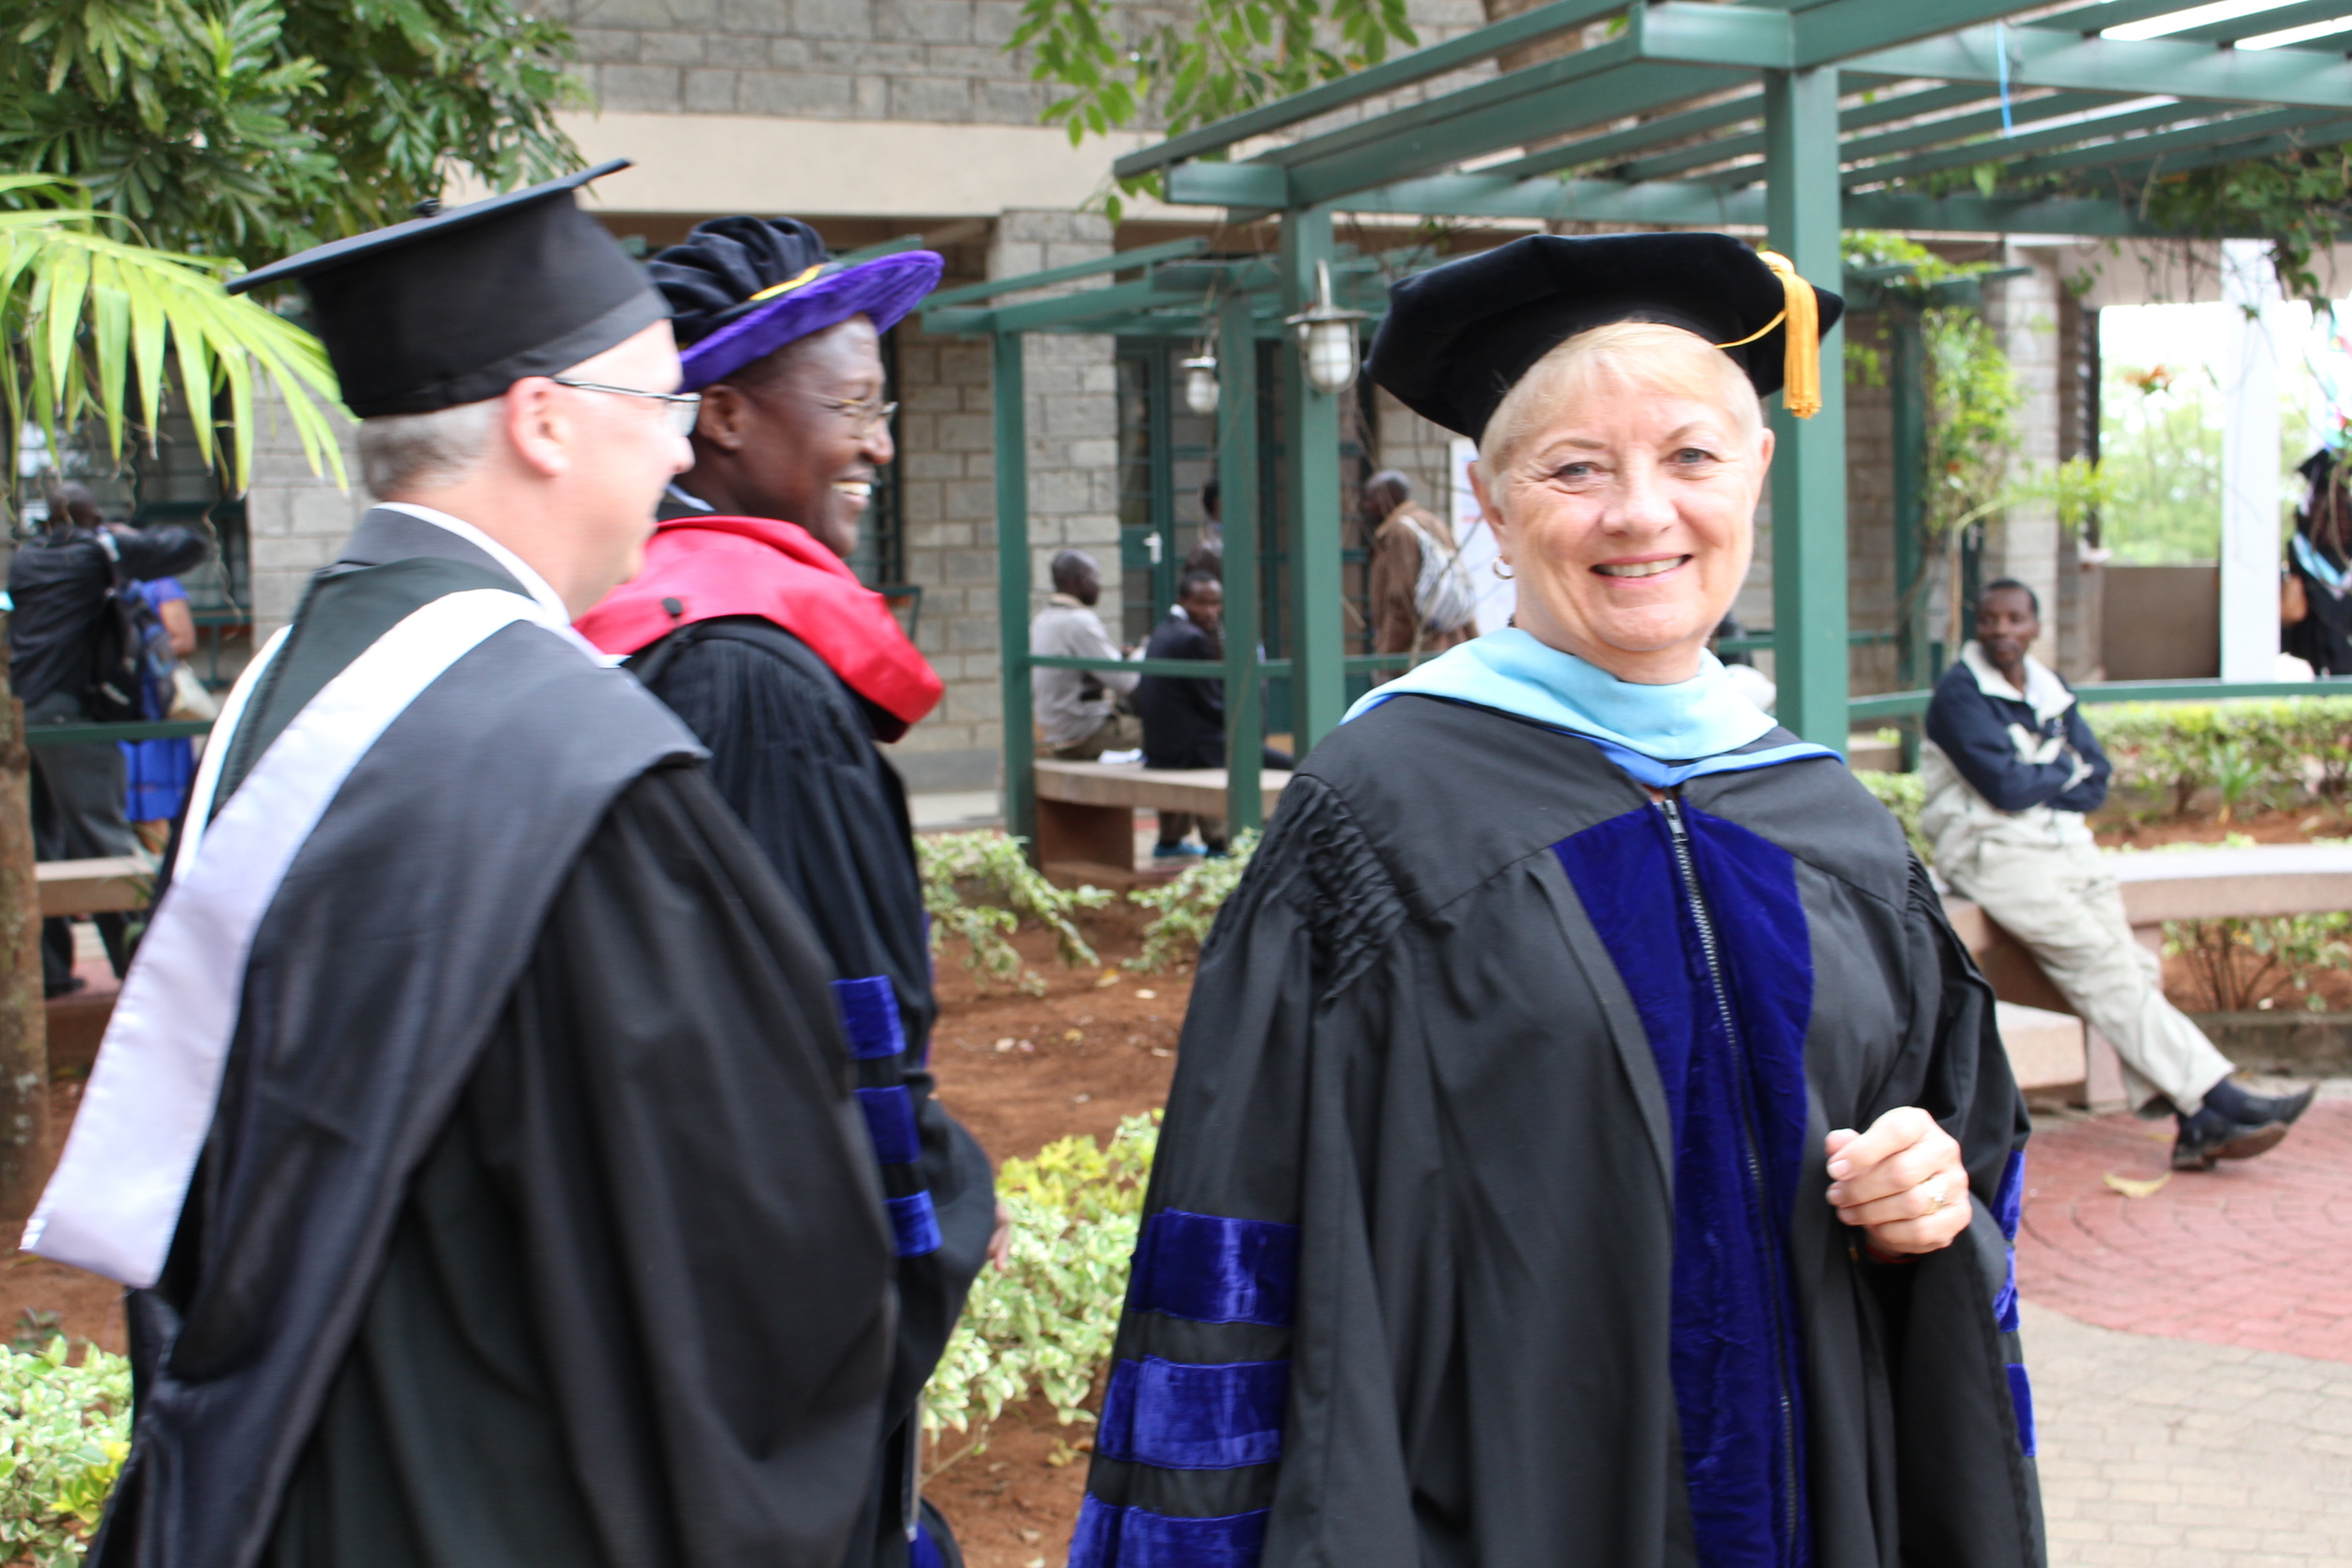 Our Executive Director, Kathy, walked with other dignitaries at the graduation ceremony. Kathy is a seasoned traveler to Kenya; this was the 5th graduation ceremony she attended!